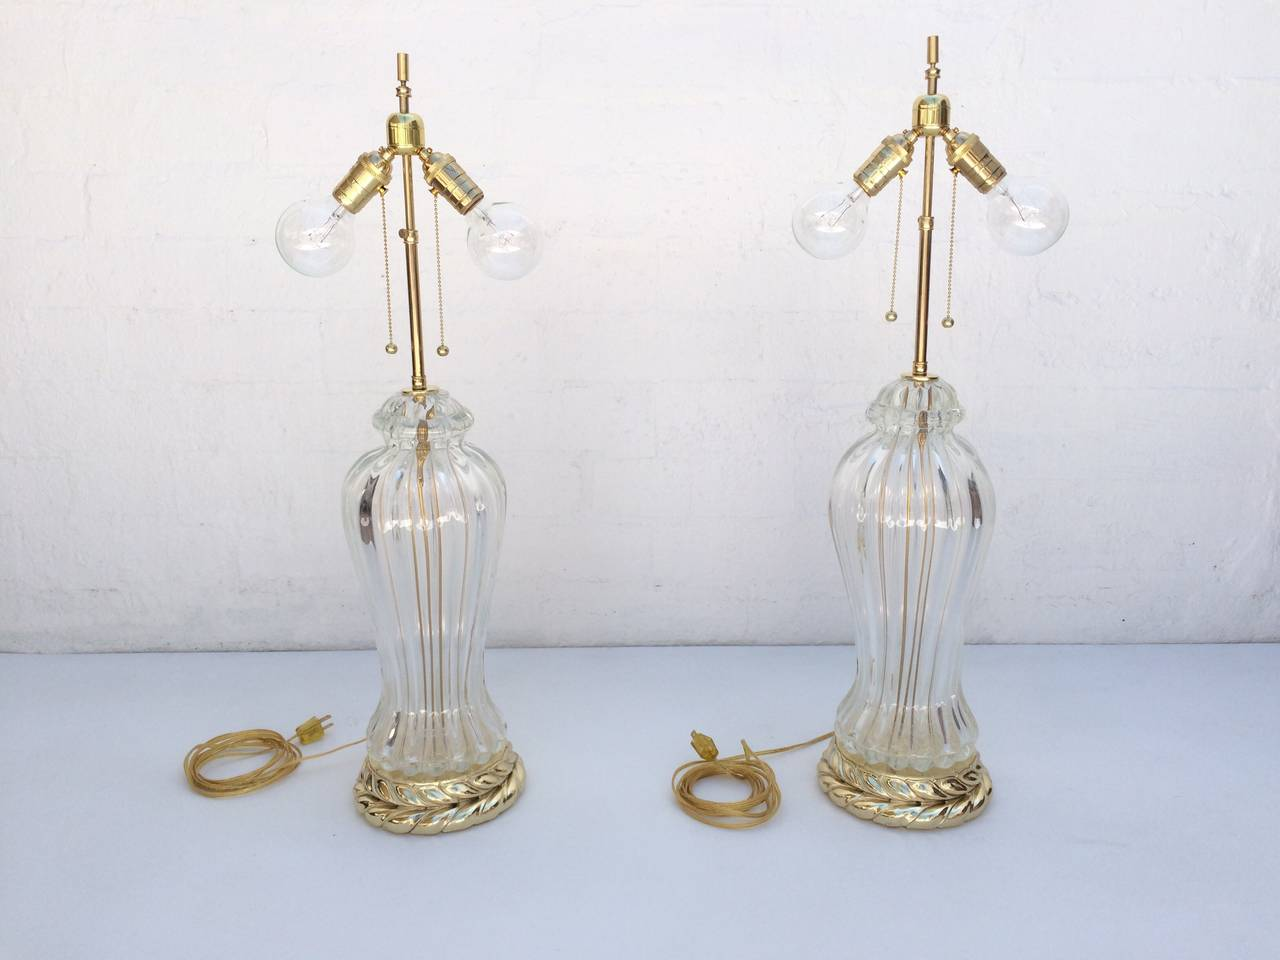 Mid-20th Century Pair of Murano Glass Table Lamps Made by Marbro Lamp Company For Sale